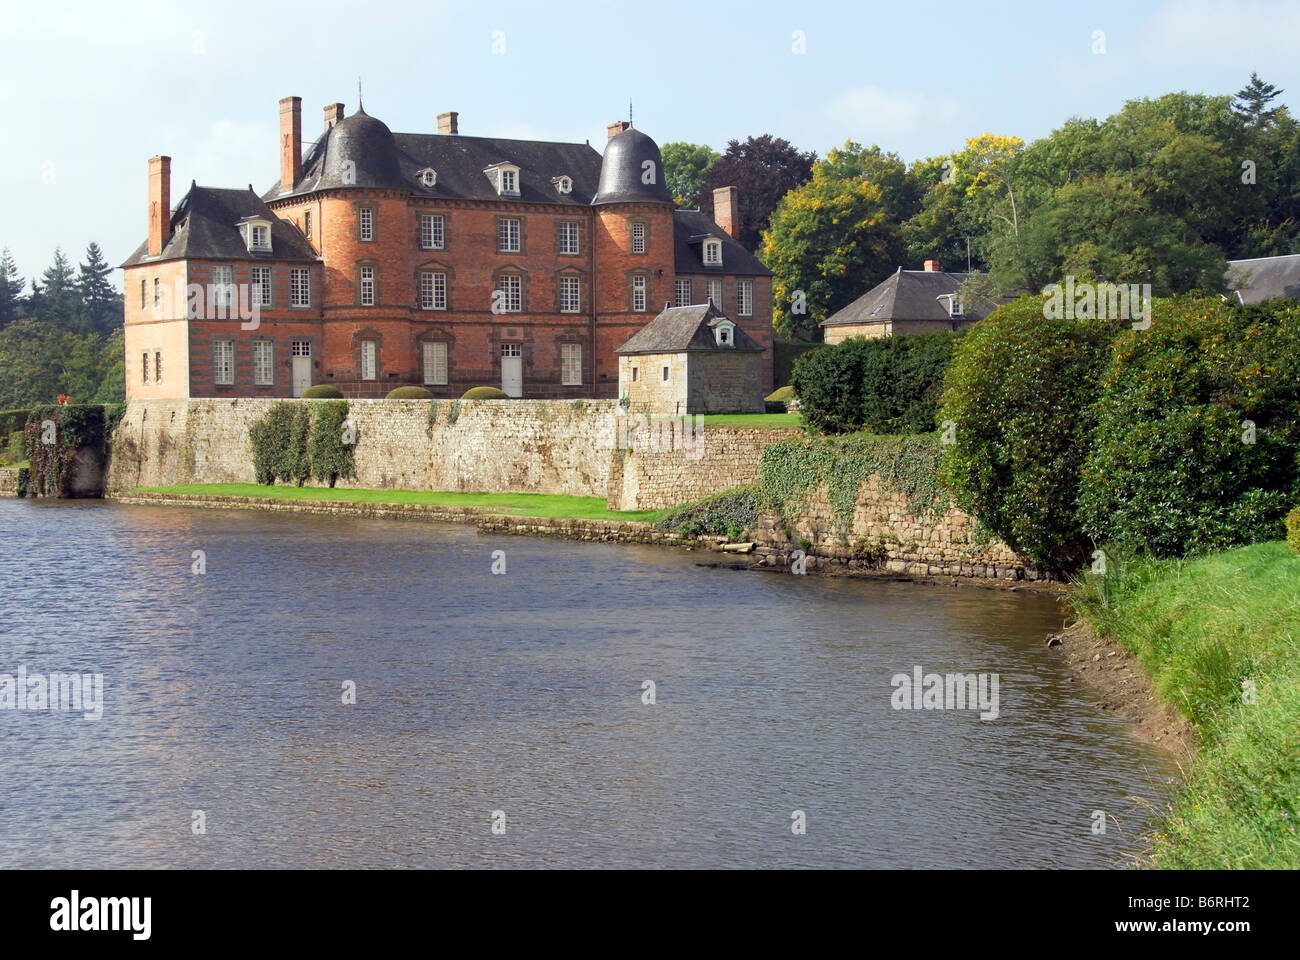 Chateau Couterne, Normandy, France - Stock Image